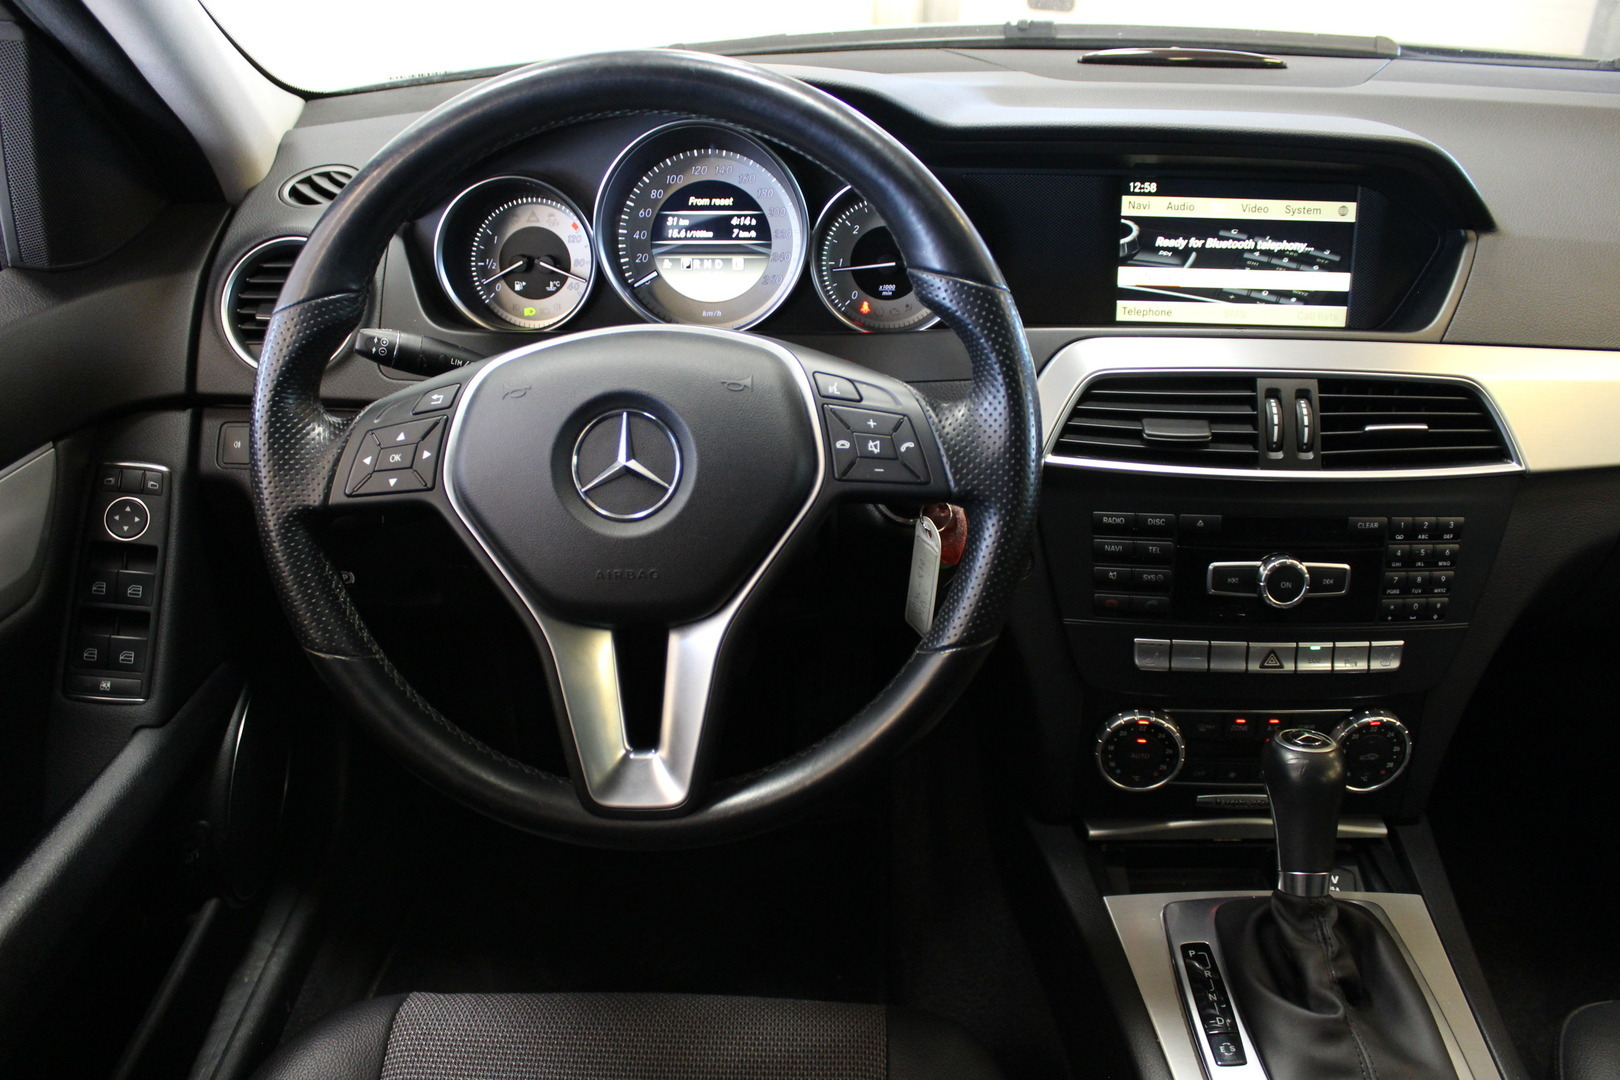 Mercedes-Benz C, 220 CDI Avantgarde #Siisti #Navigointi #Bluetooth